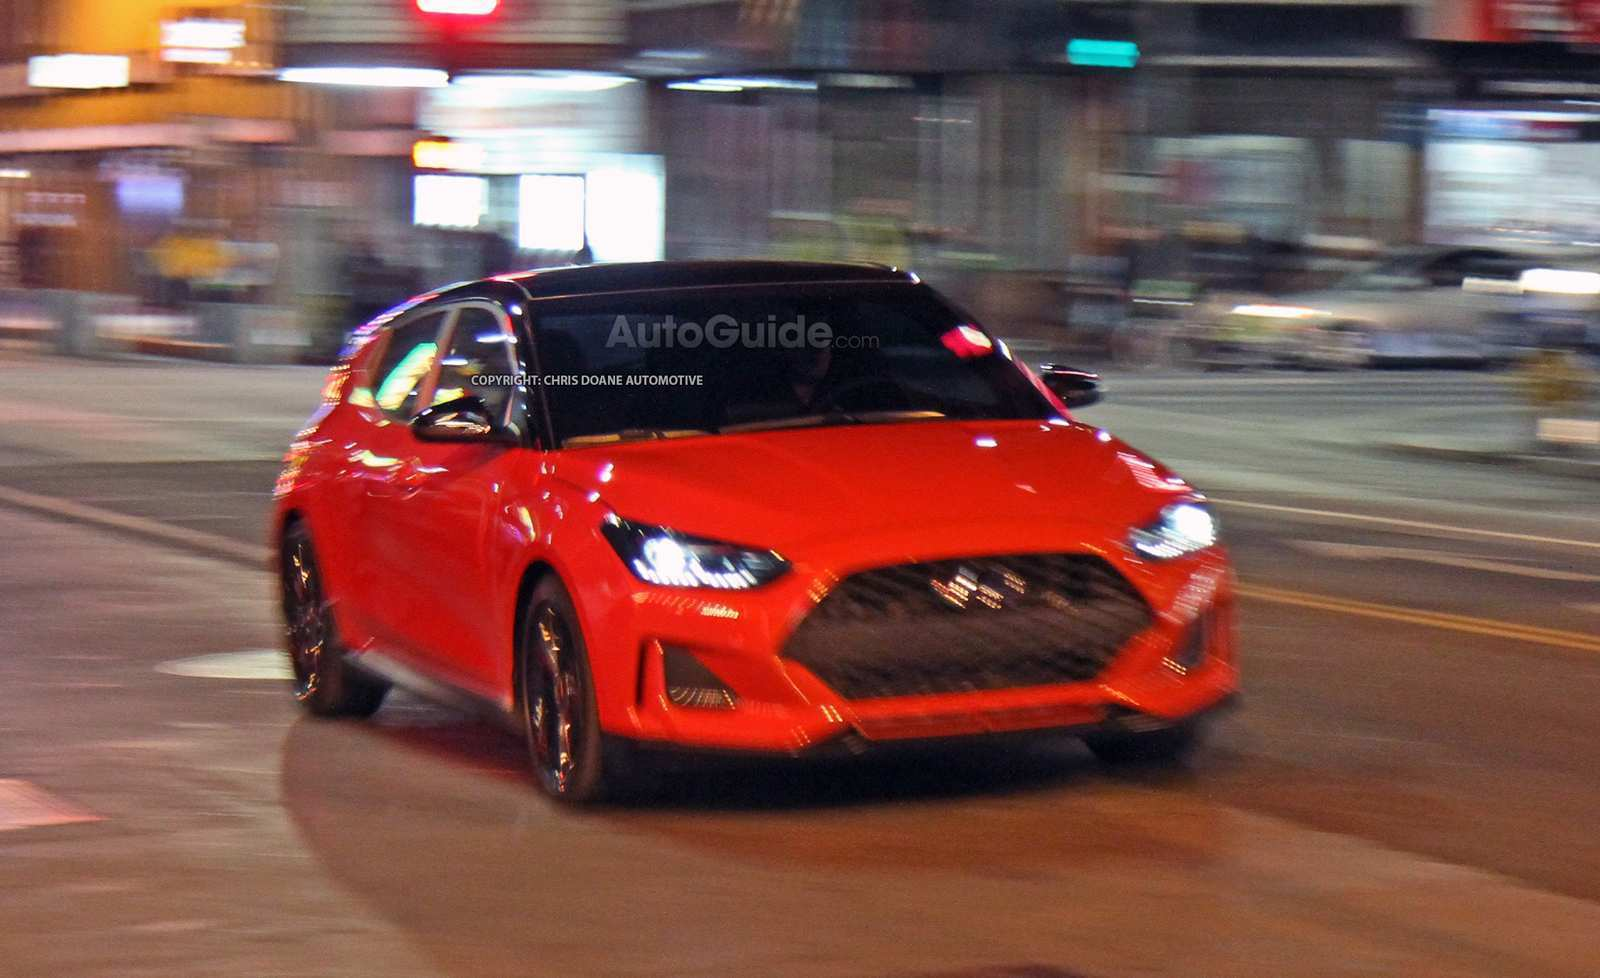 82 Concept of 2020 Hyundai Veloster Wallpaper by 2020 Hyundai Veloster